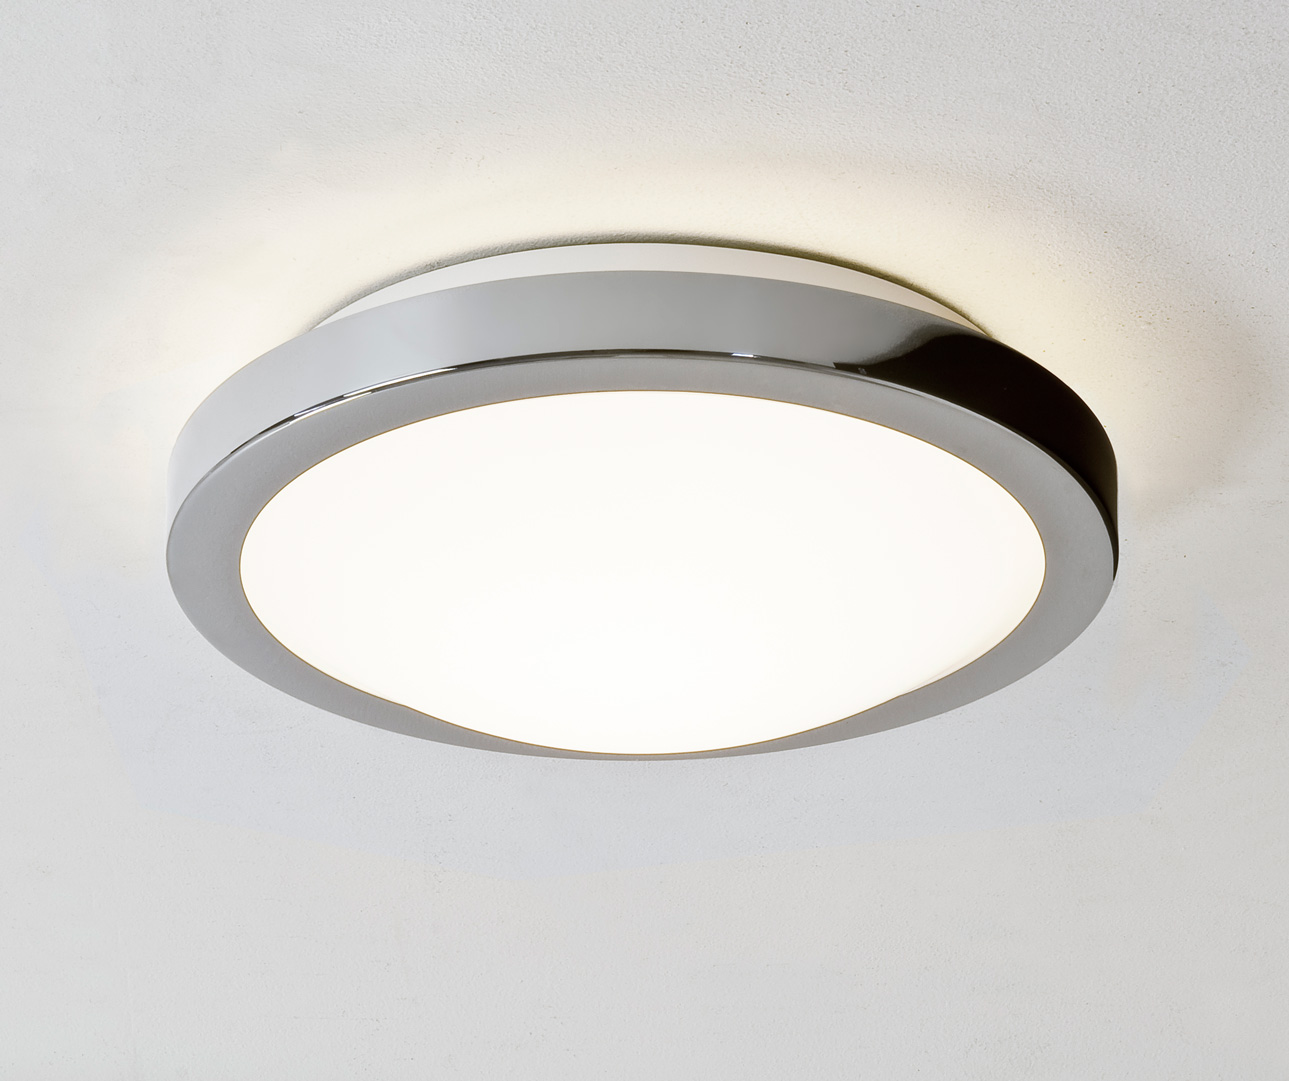 ASTRO Mariner 0270 round bathroom ceiling light 60W E127 lamp IP44 Chrome finish Thumbnail 1